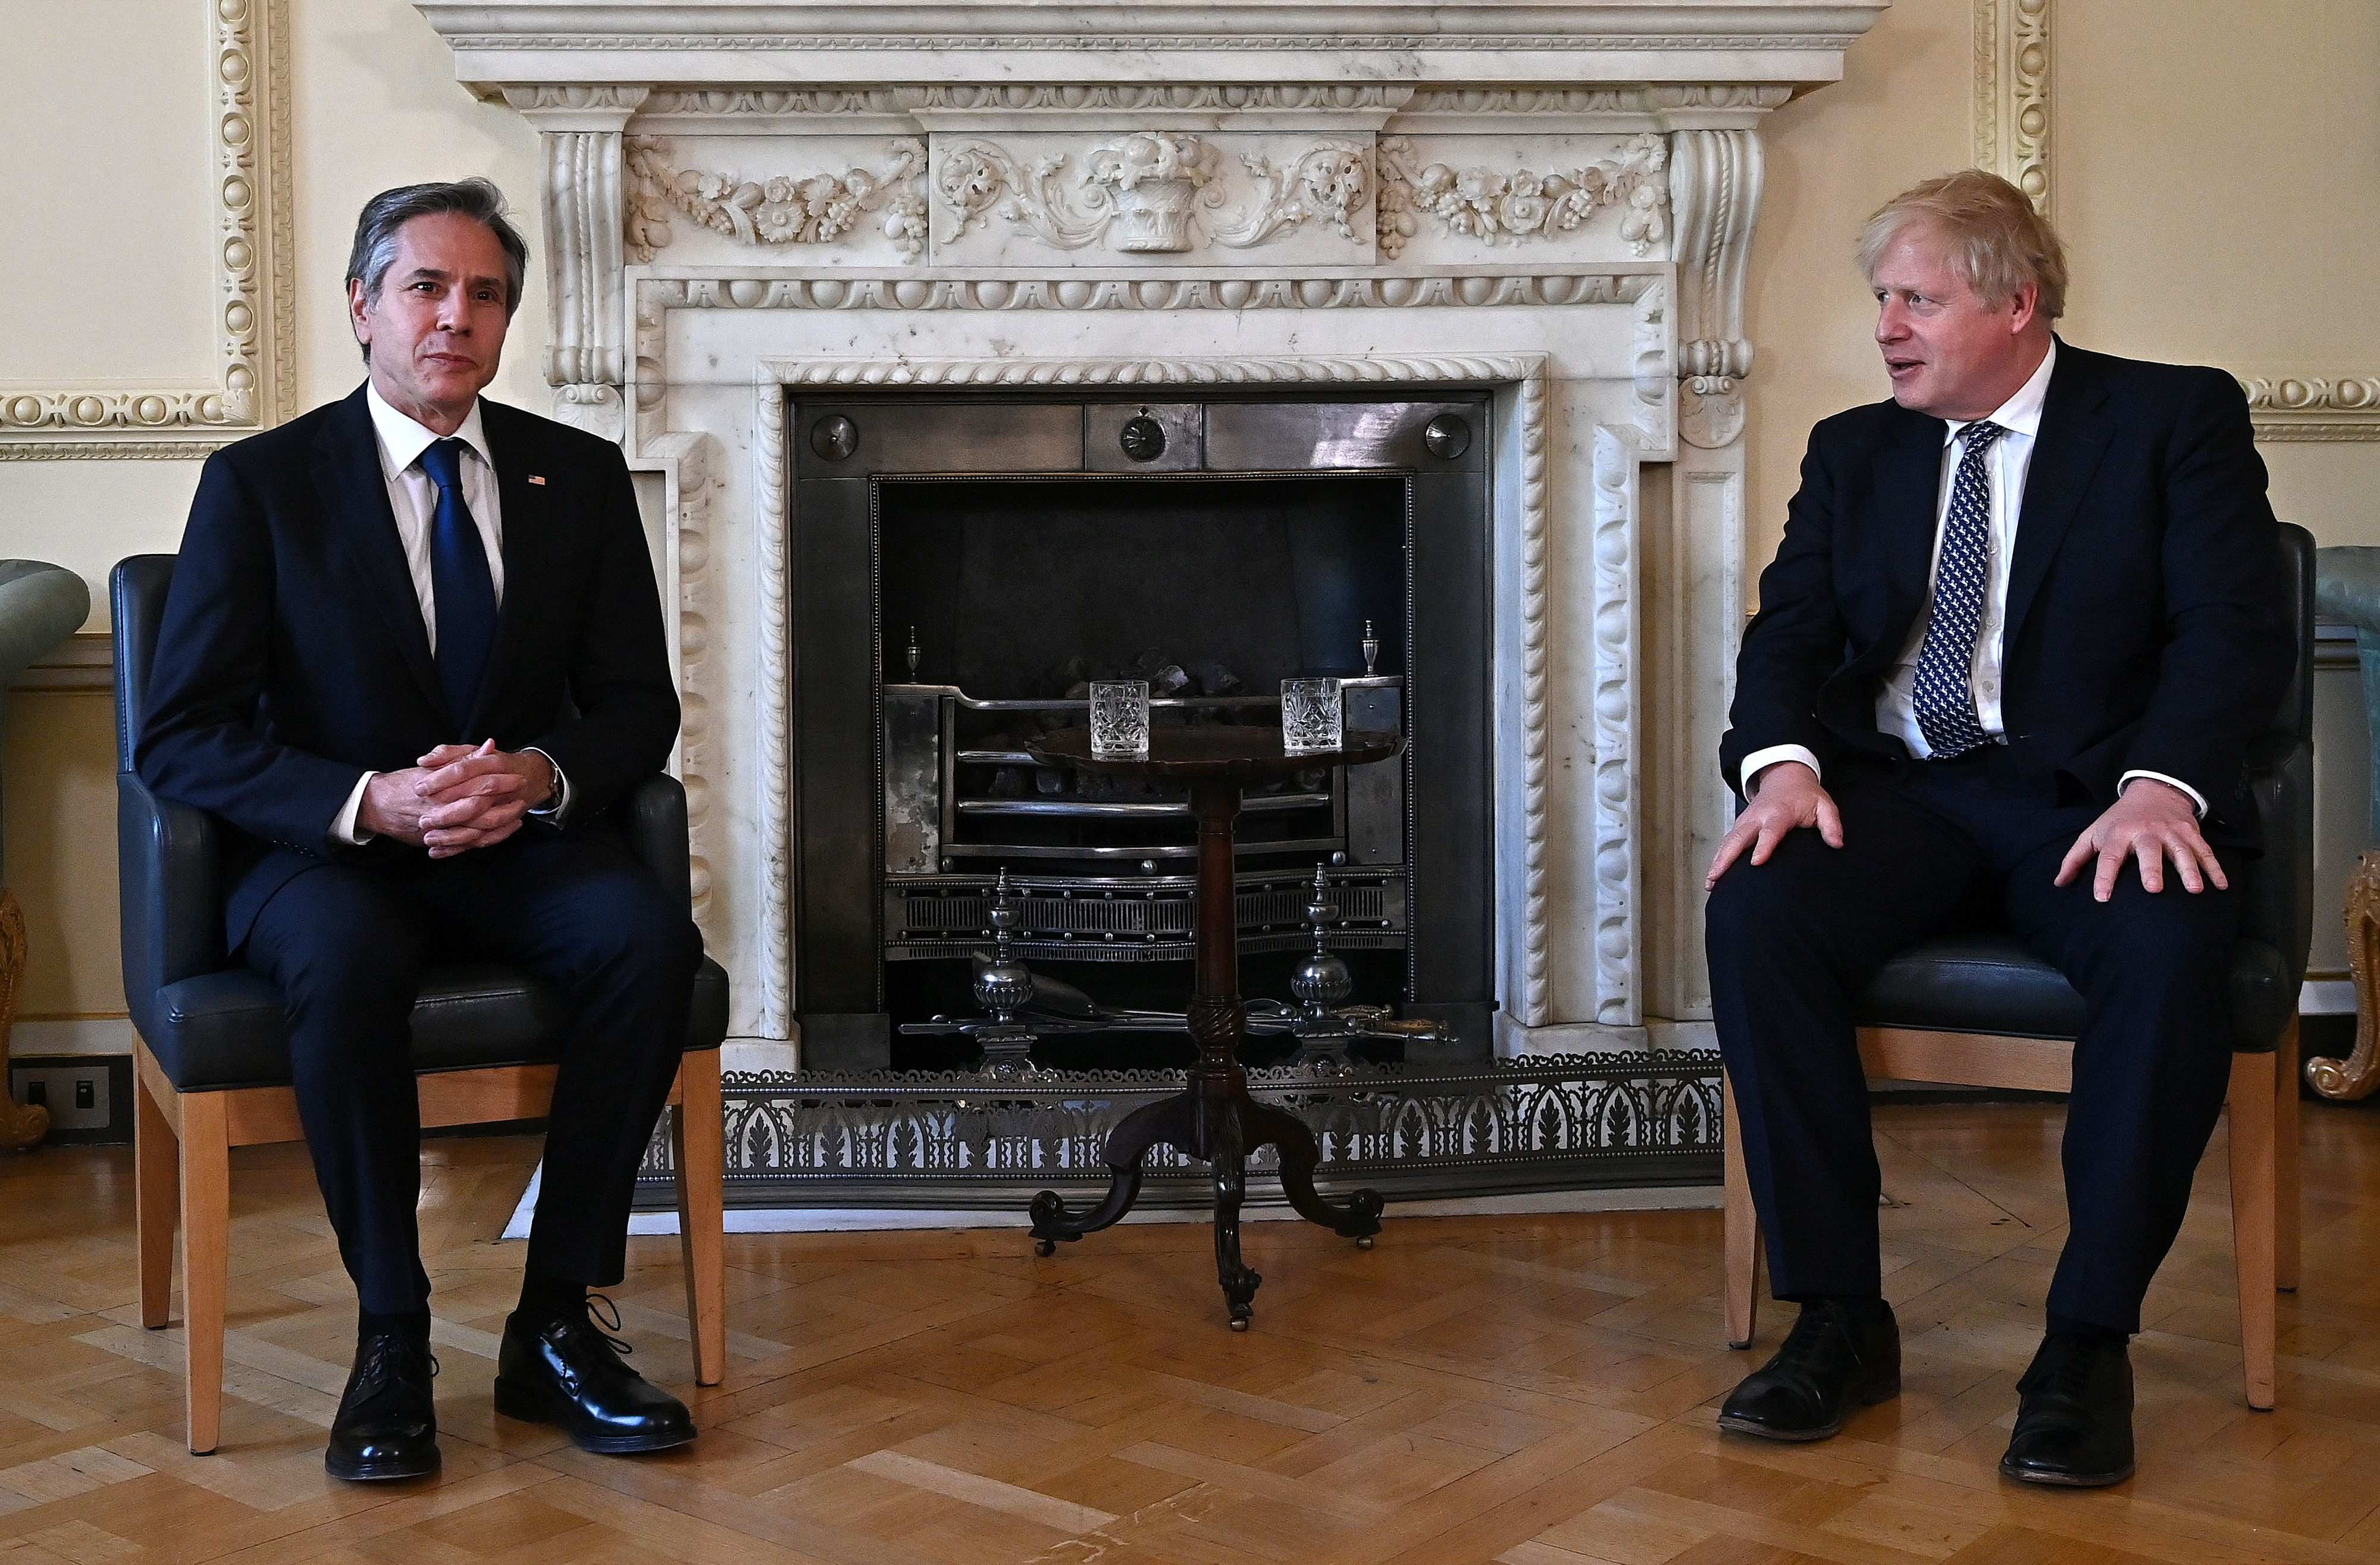 Britain's Prime Minister Boris Johnson meets U.S. Secretary of State Antony Blinken, for a bilateral meeting at the G7 foreign ministers meeting in London, Britain May 4, 2021. Ben Stansall/Pool via REUTERS